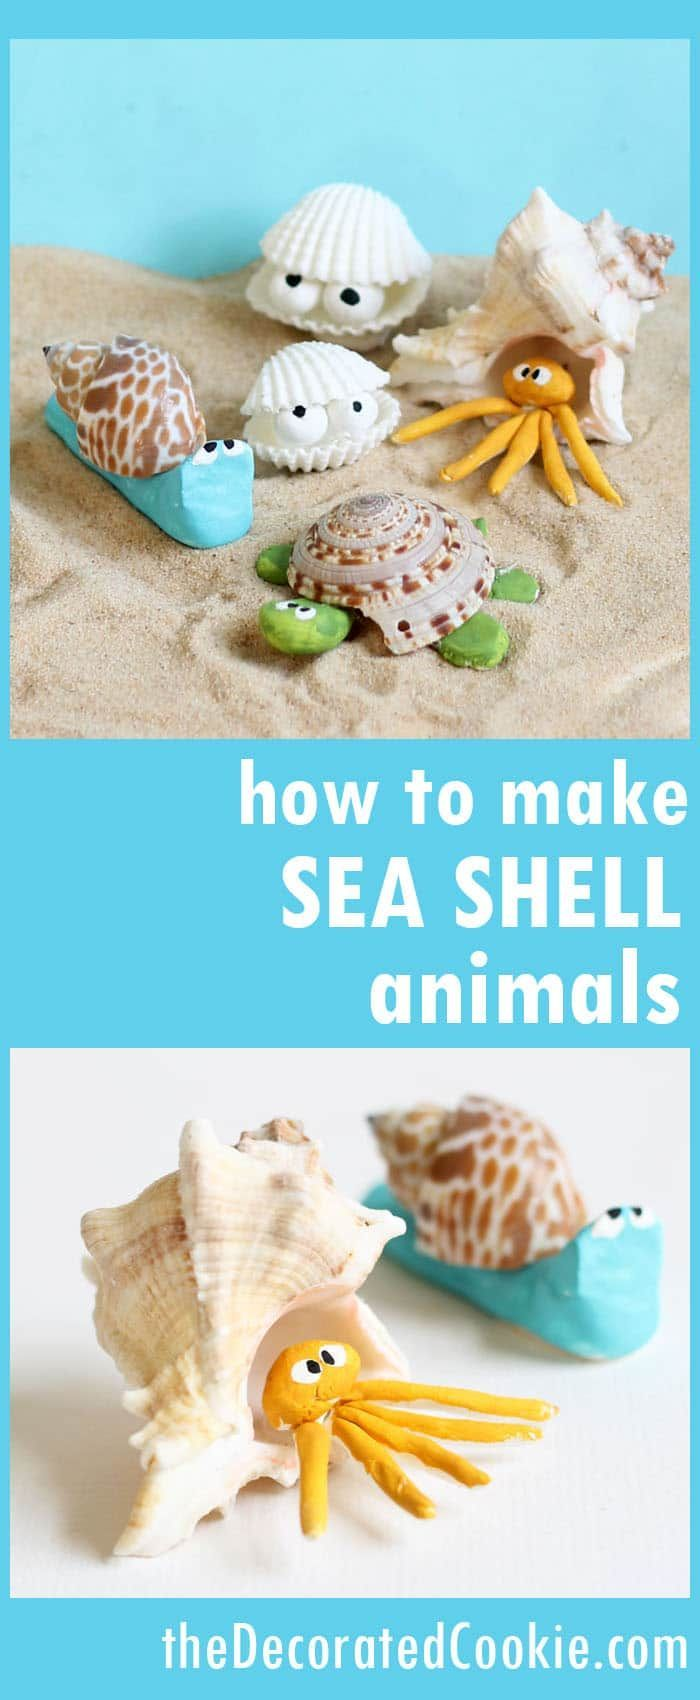 Seashell Creatures With Images Beach Crafts For Kids Beach